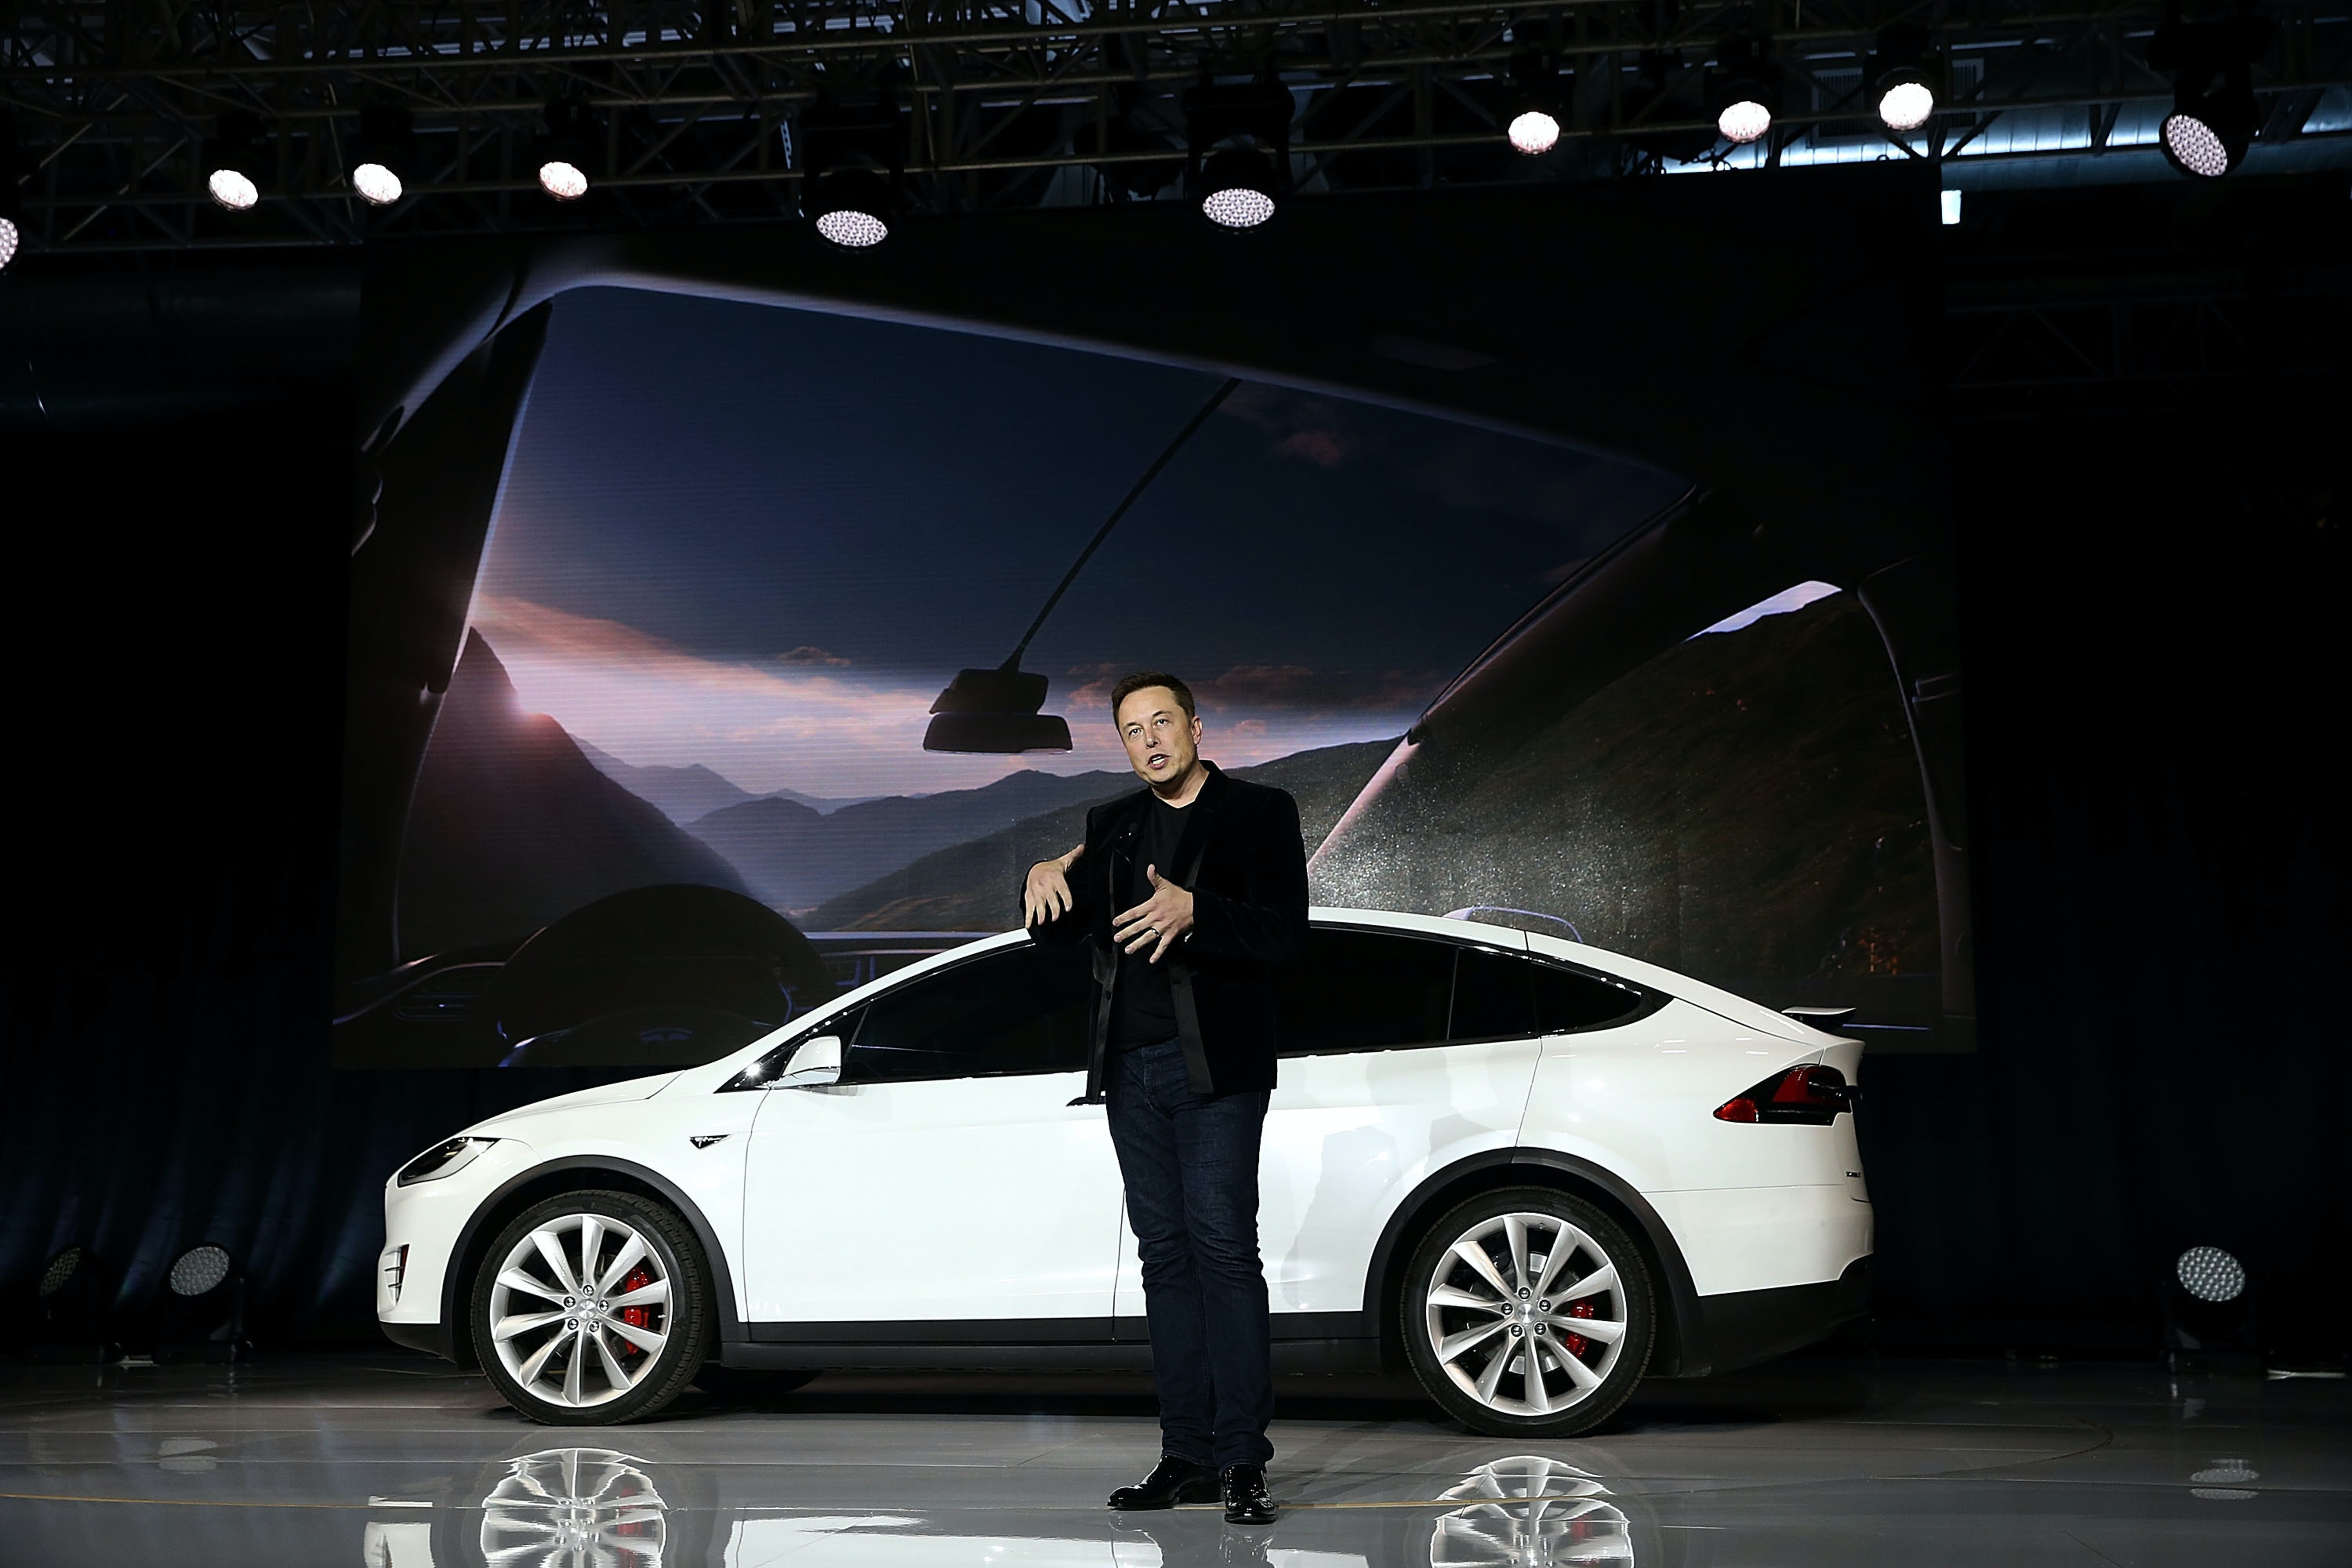 Tesla CEO Elon Musk has made clear his self-driving car ambitions. Apple is entering a crowded space with big competitors.